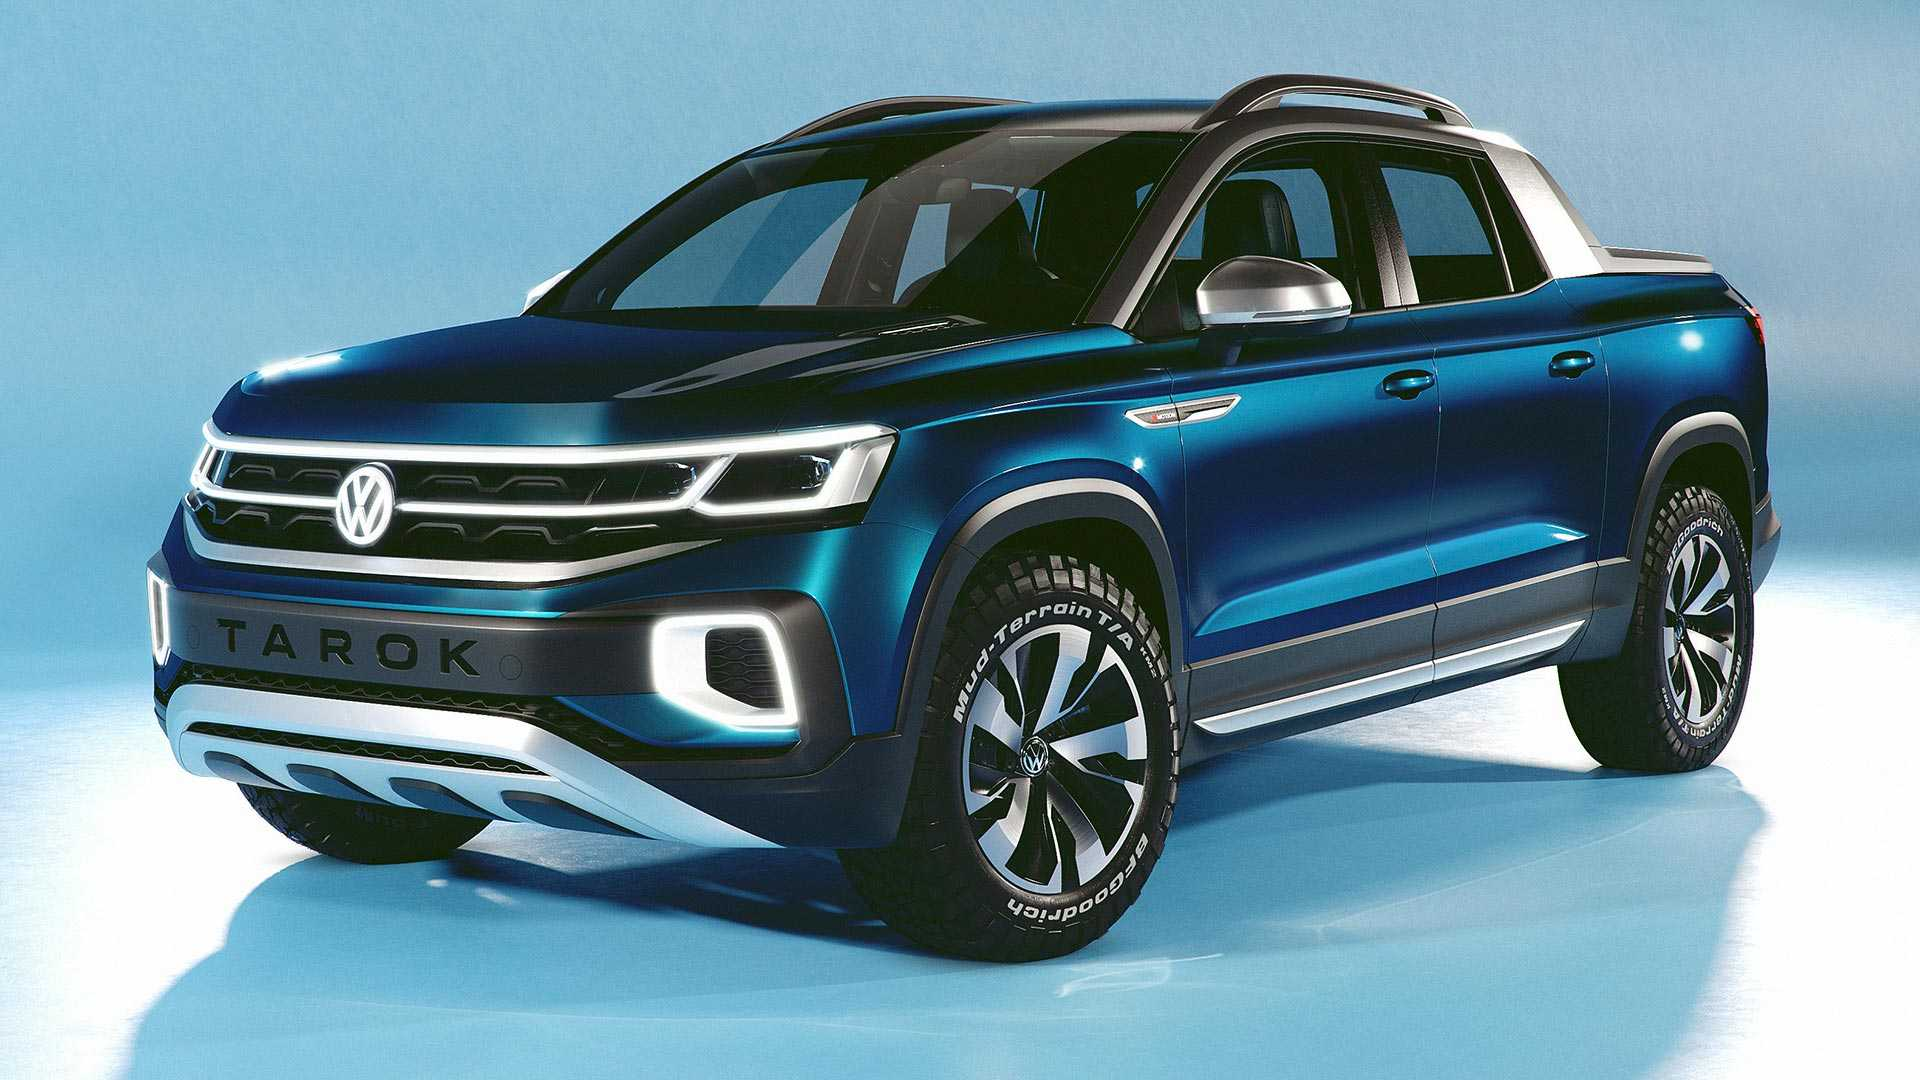 volkswagen-tarok-unibody-pickup-truck-shown-at-2019-new-york-international-auto_6